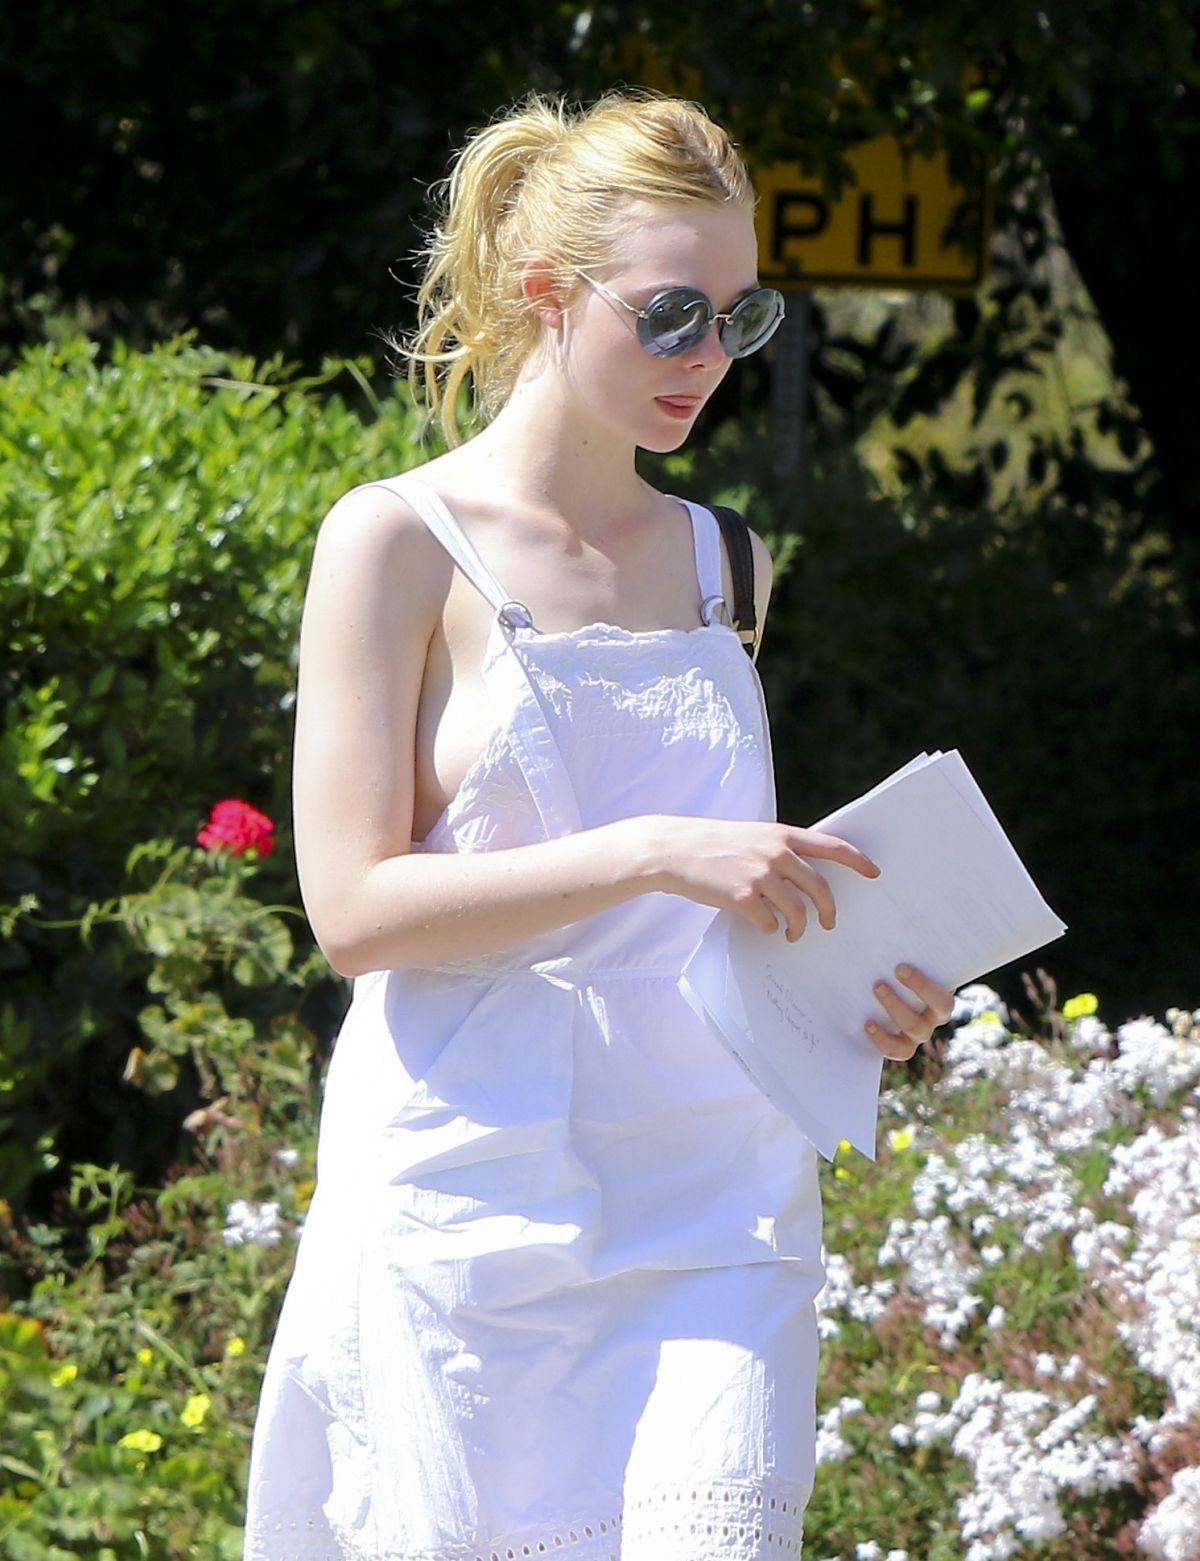 15 elle fanning - photo #12